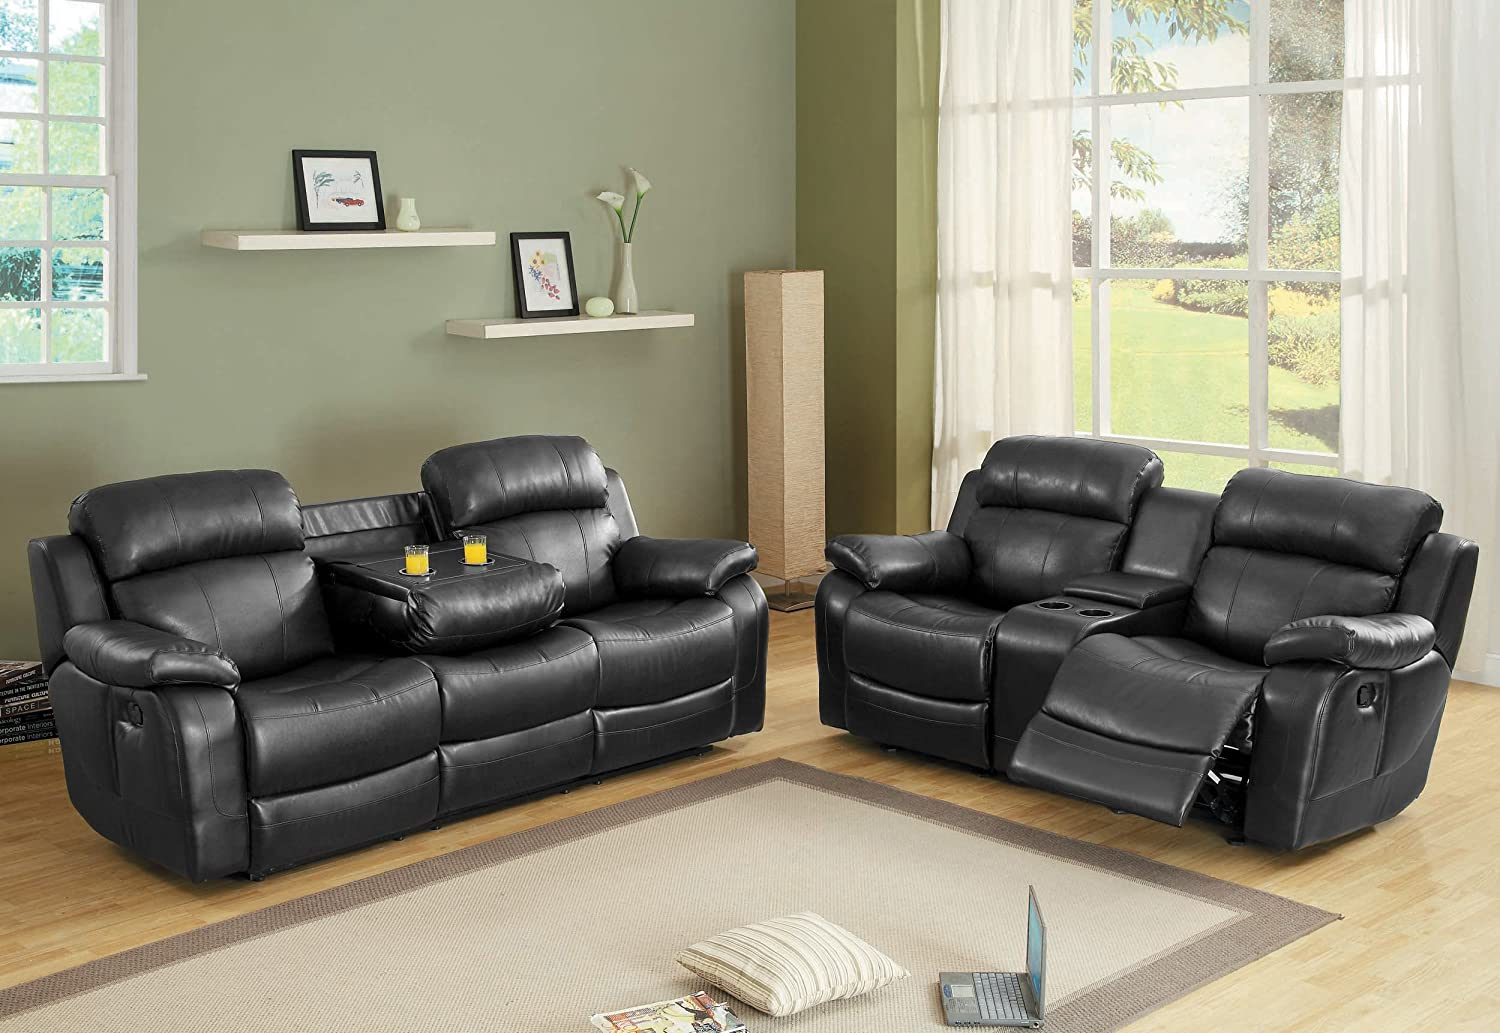 Elegant Amazon.com: Homelegance Marille Reclining Sofa W/ Center Console Cup  Holder, Black Bonded Leather: Kitchen U0026 Dining